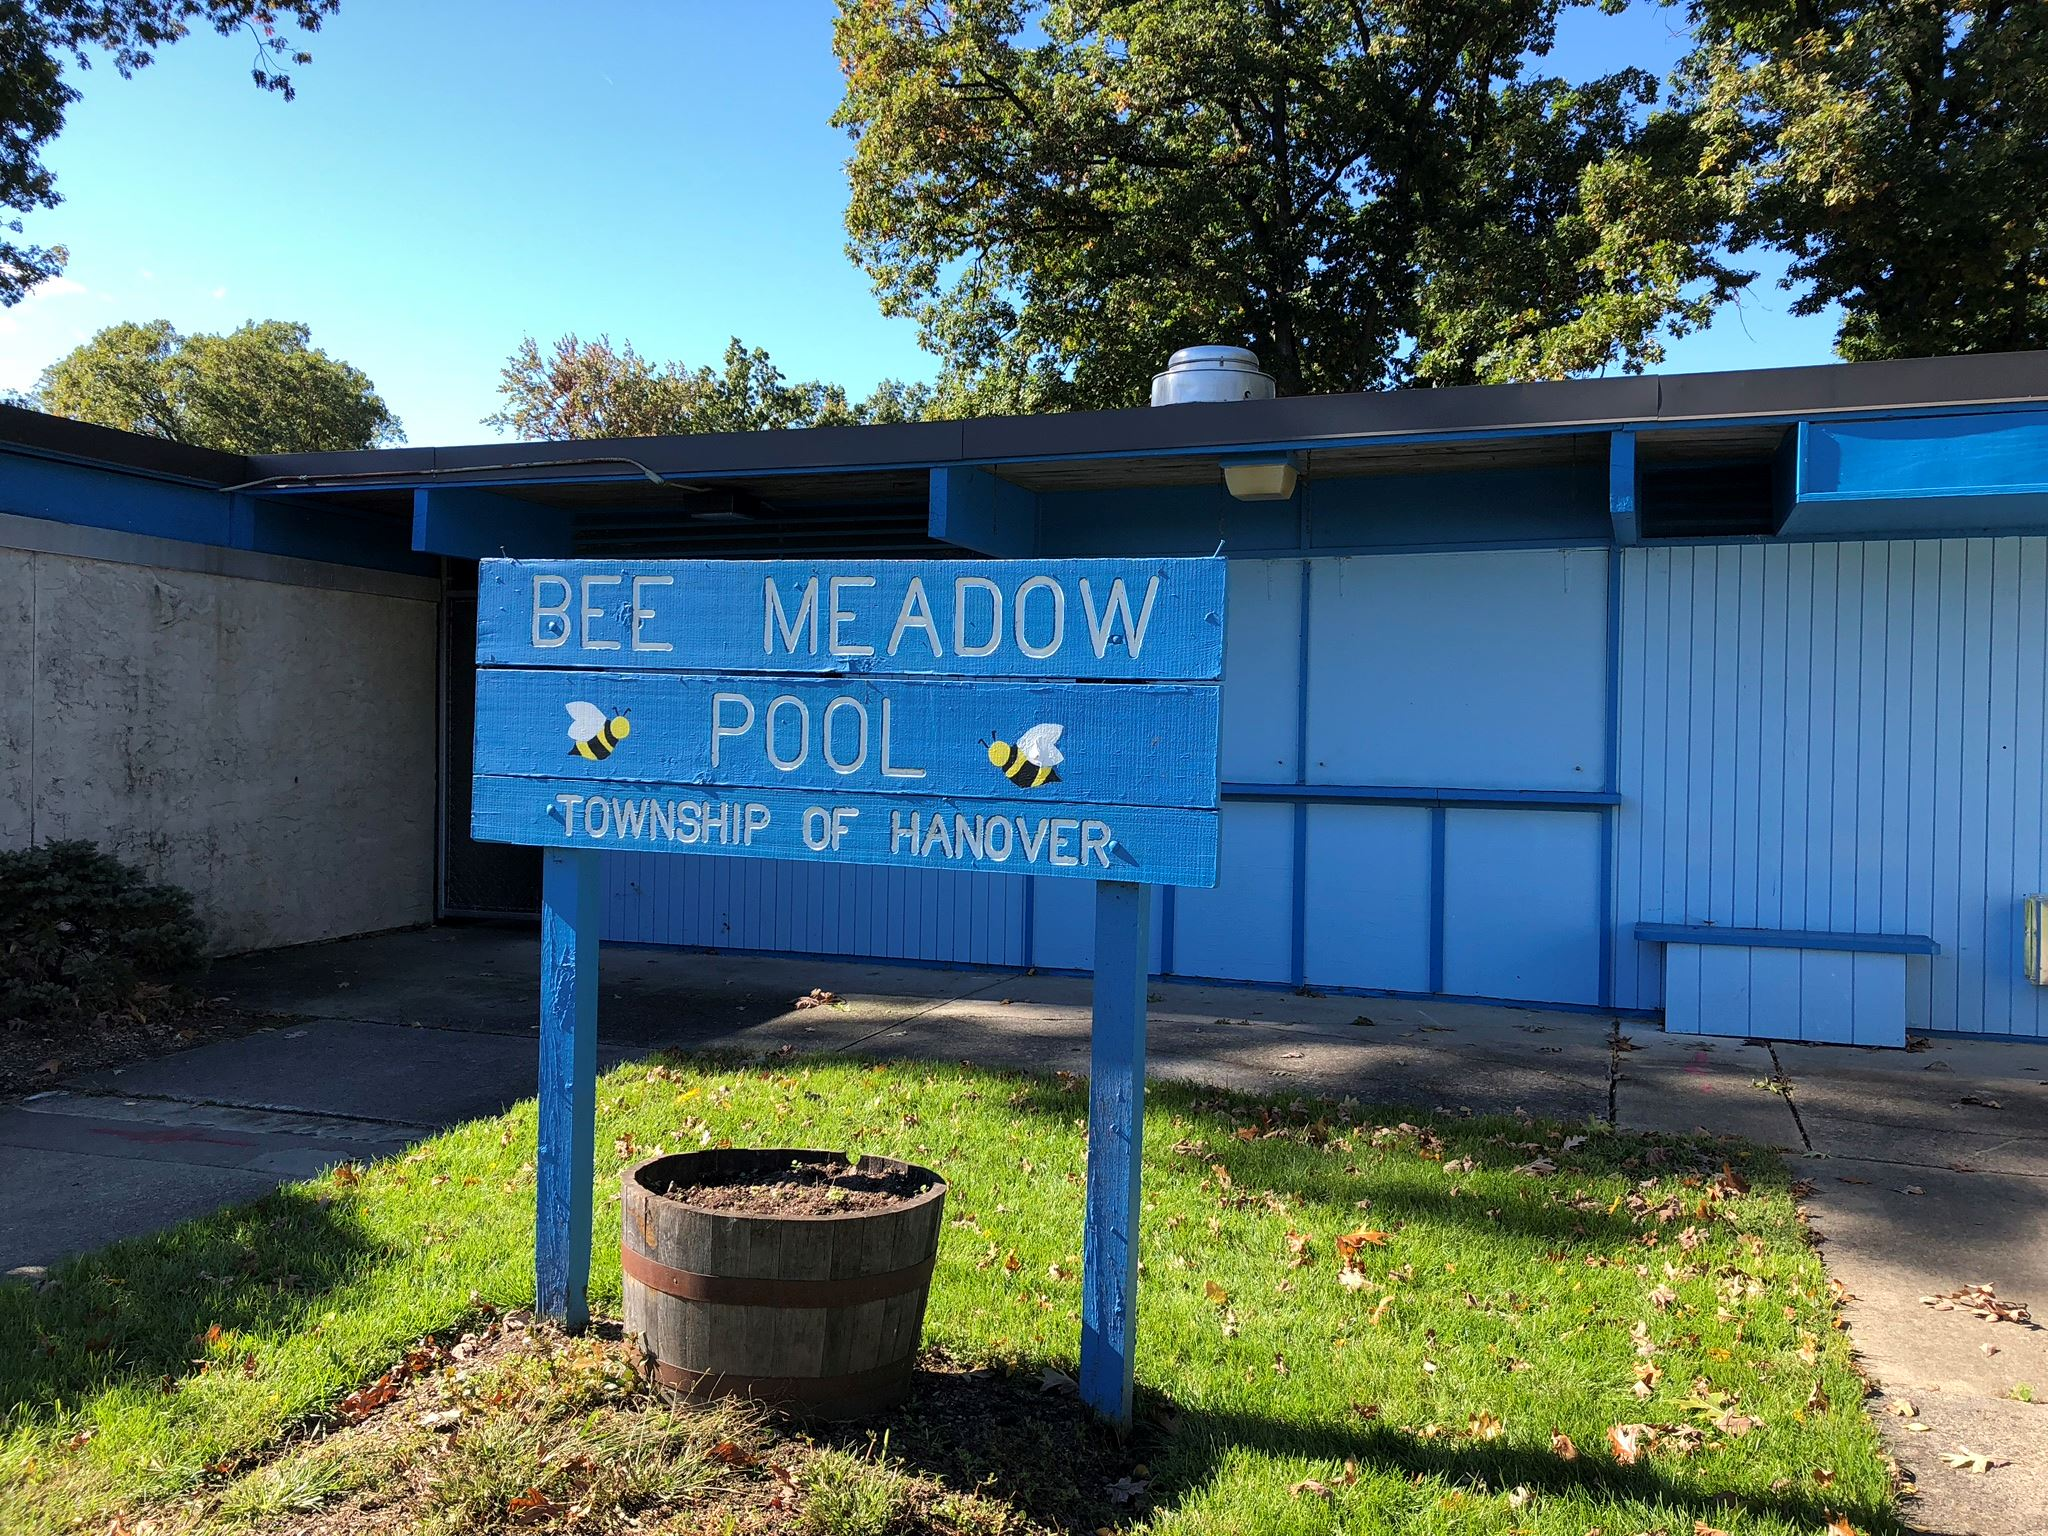 Bee Meadow Pool Sign